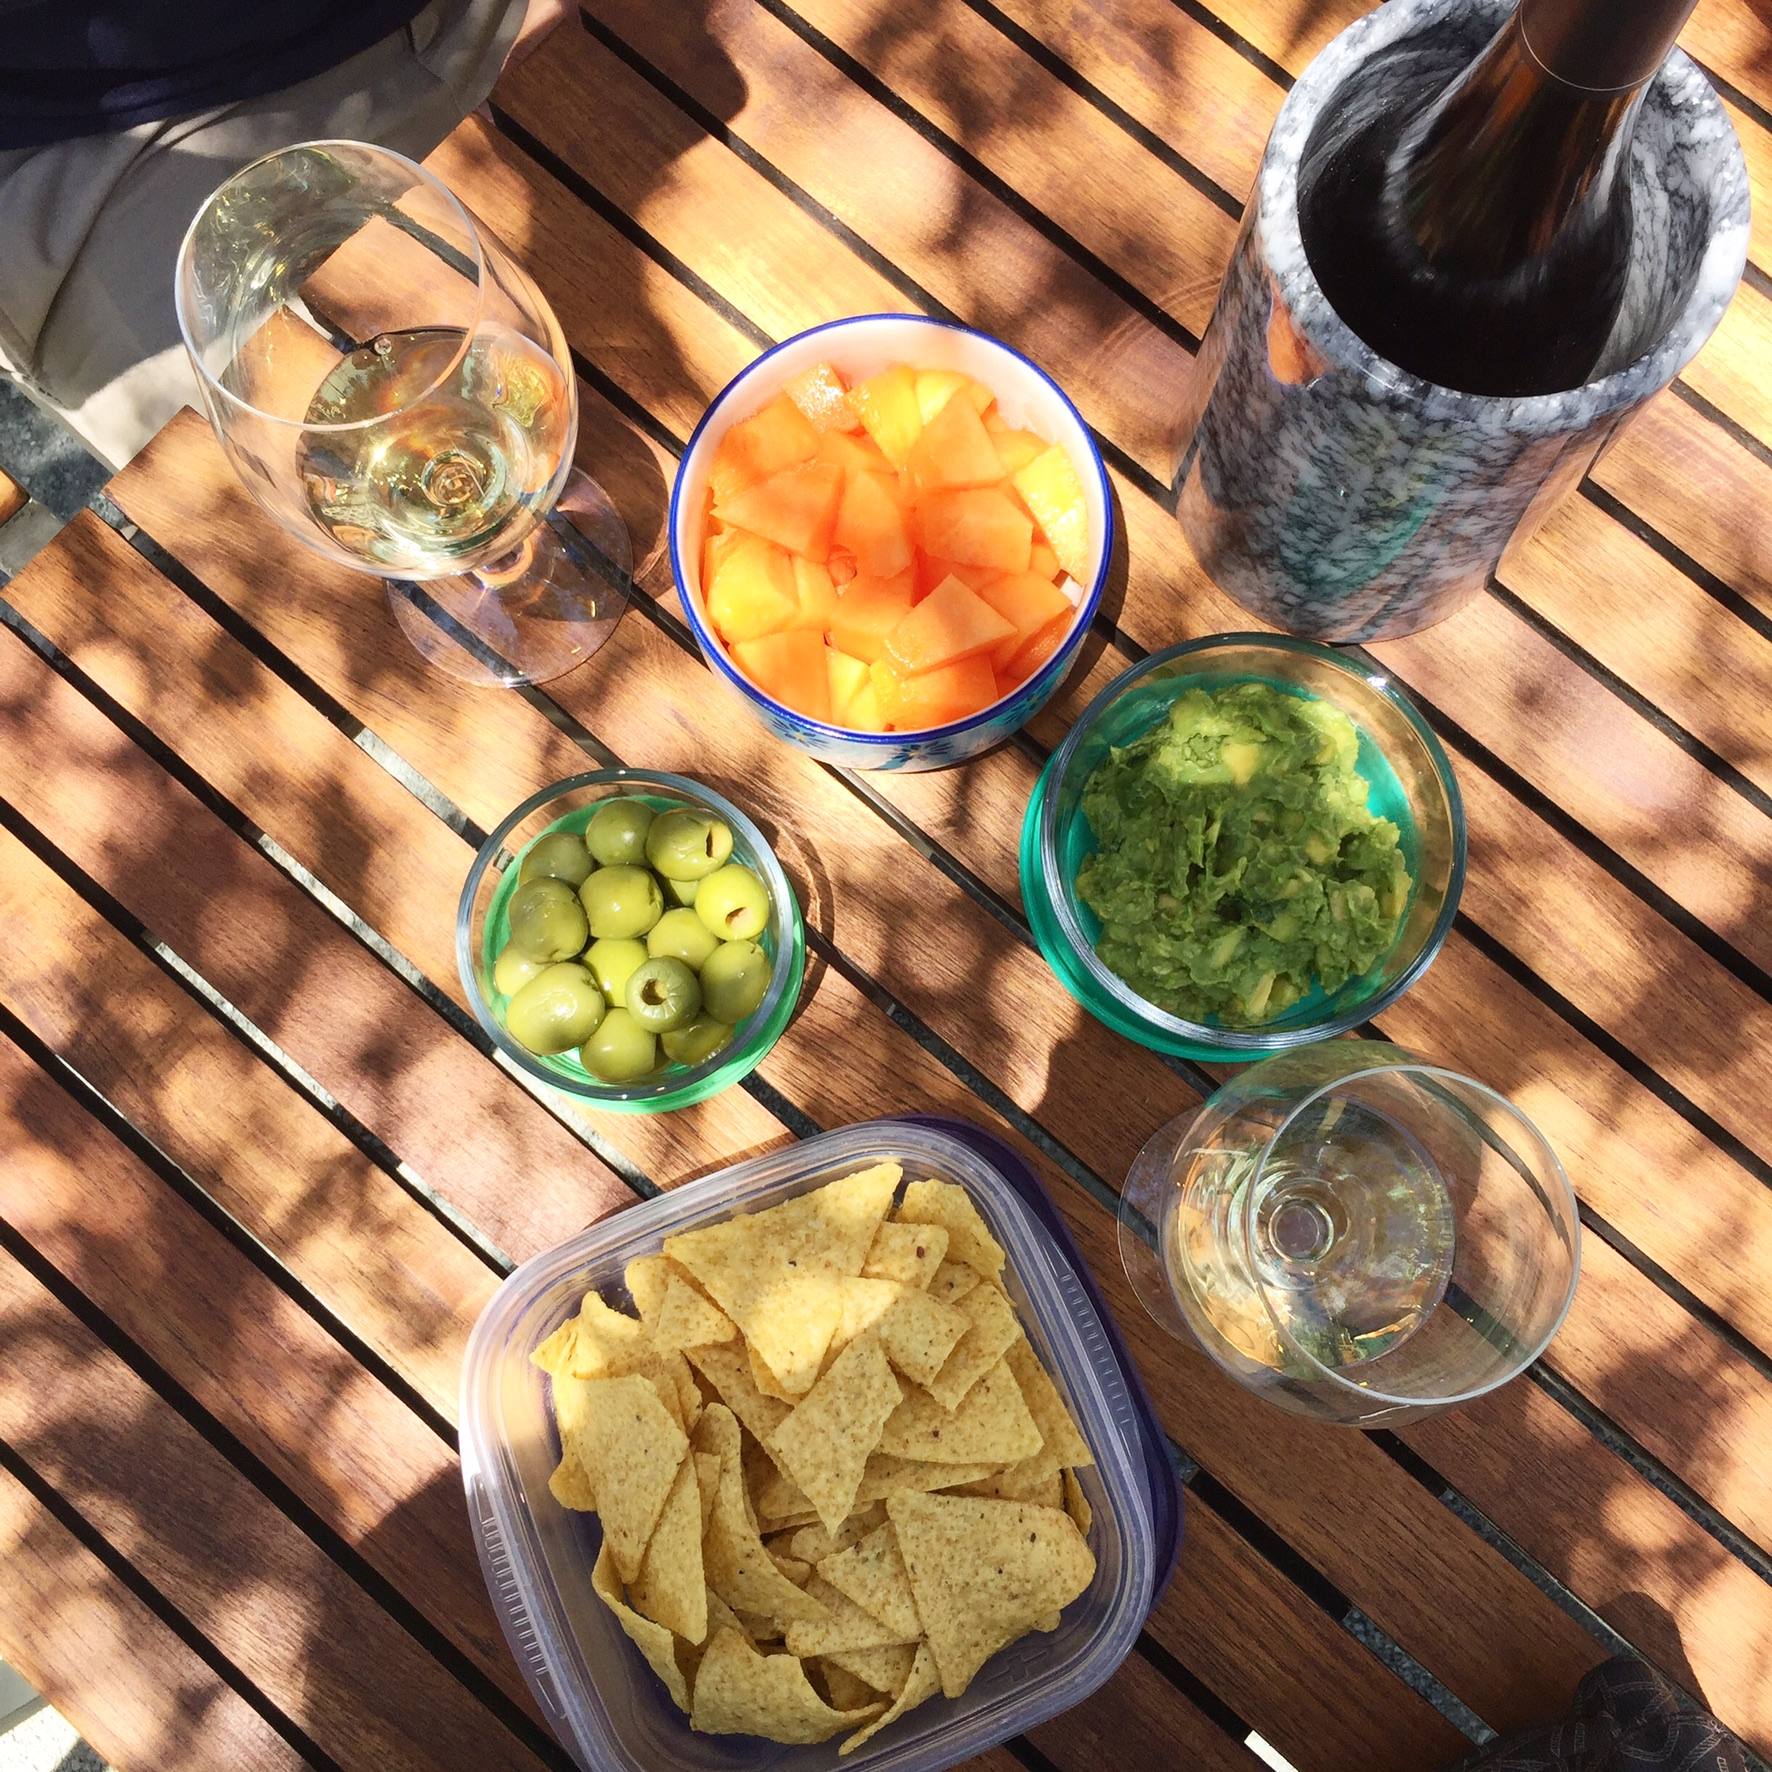 Picnic while wine tasting: tortillas chips, guacamole, green olives, cantaloupe.